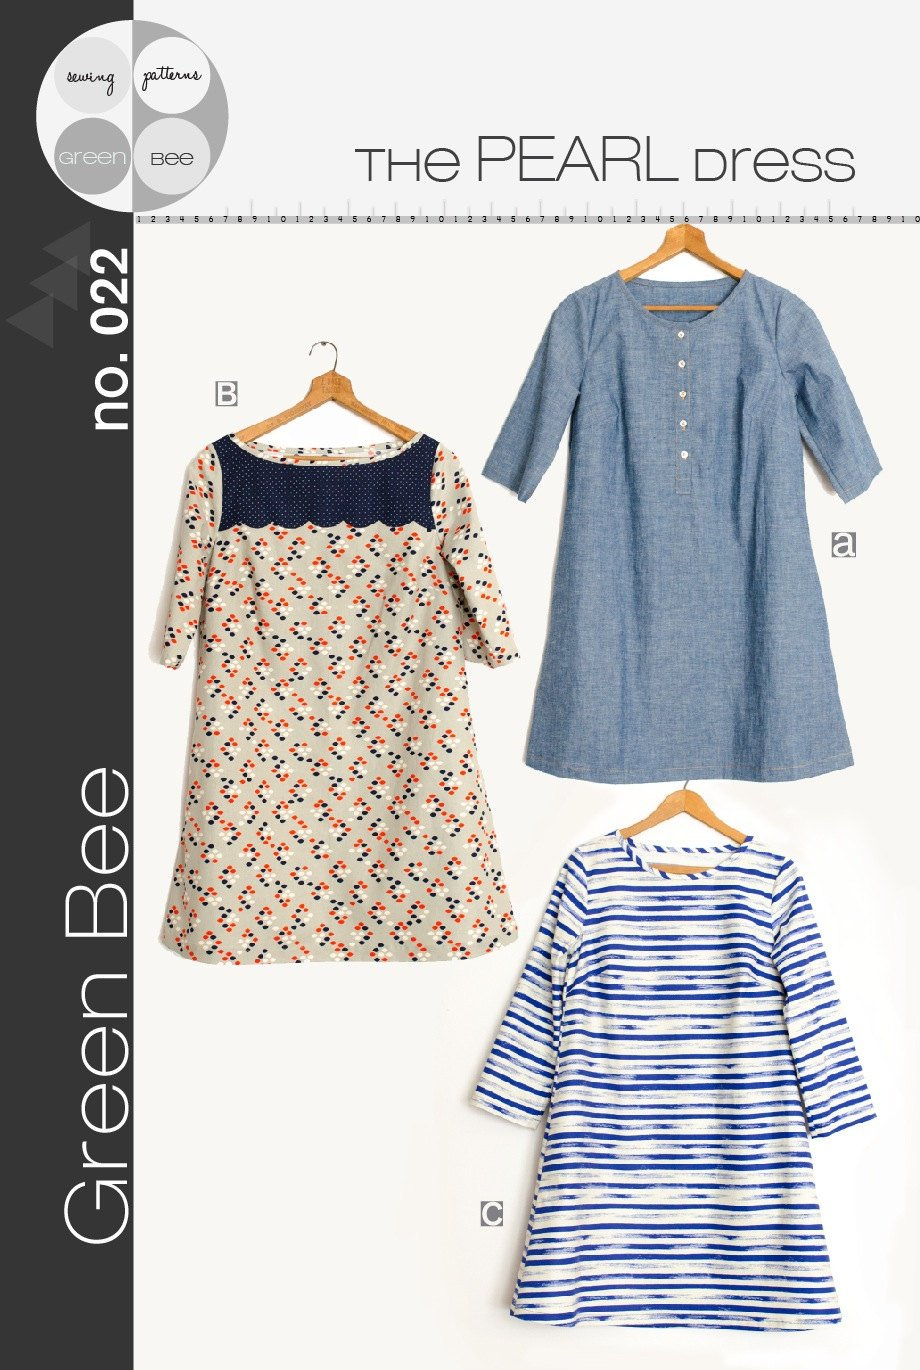 The Pearl Dress Pattern from Green Bee Patterns